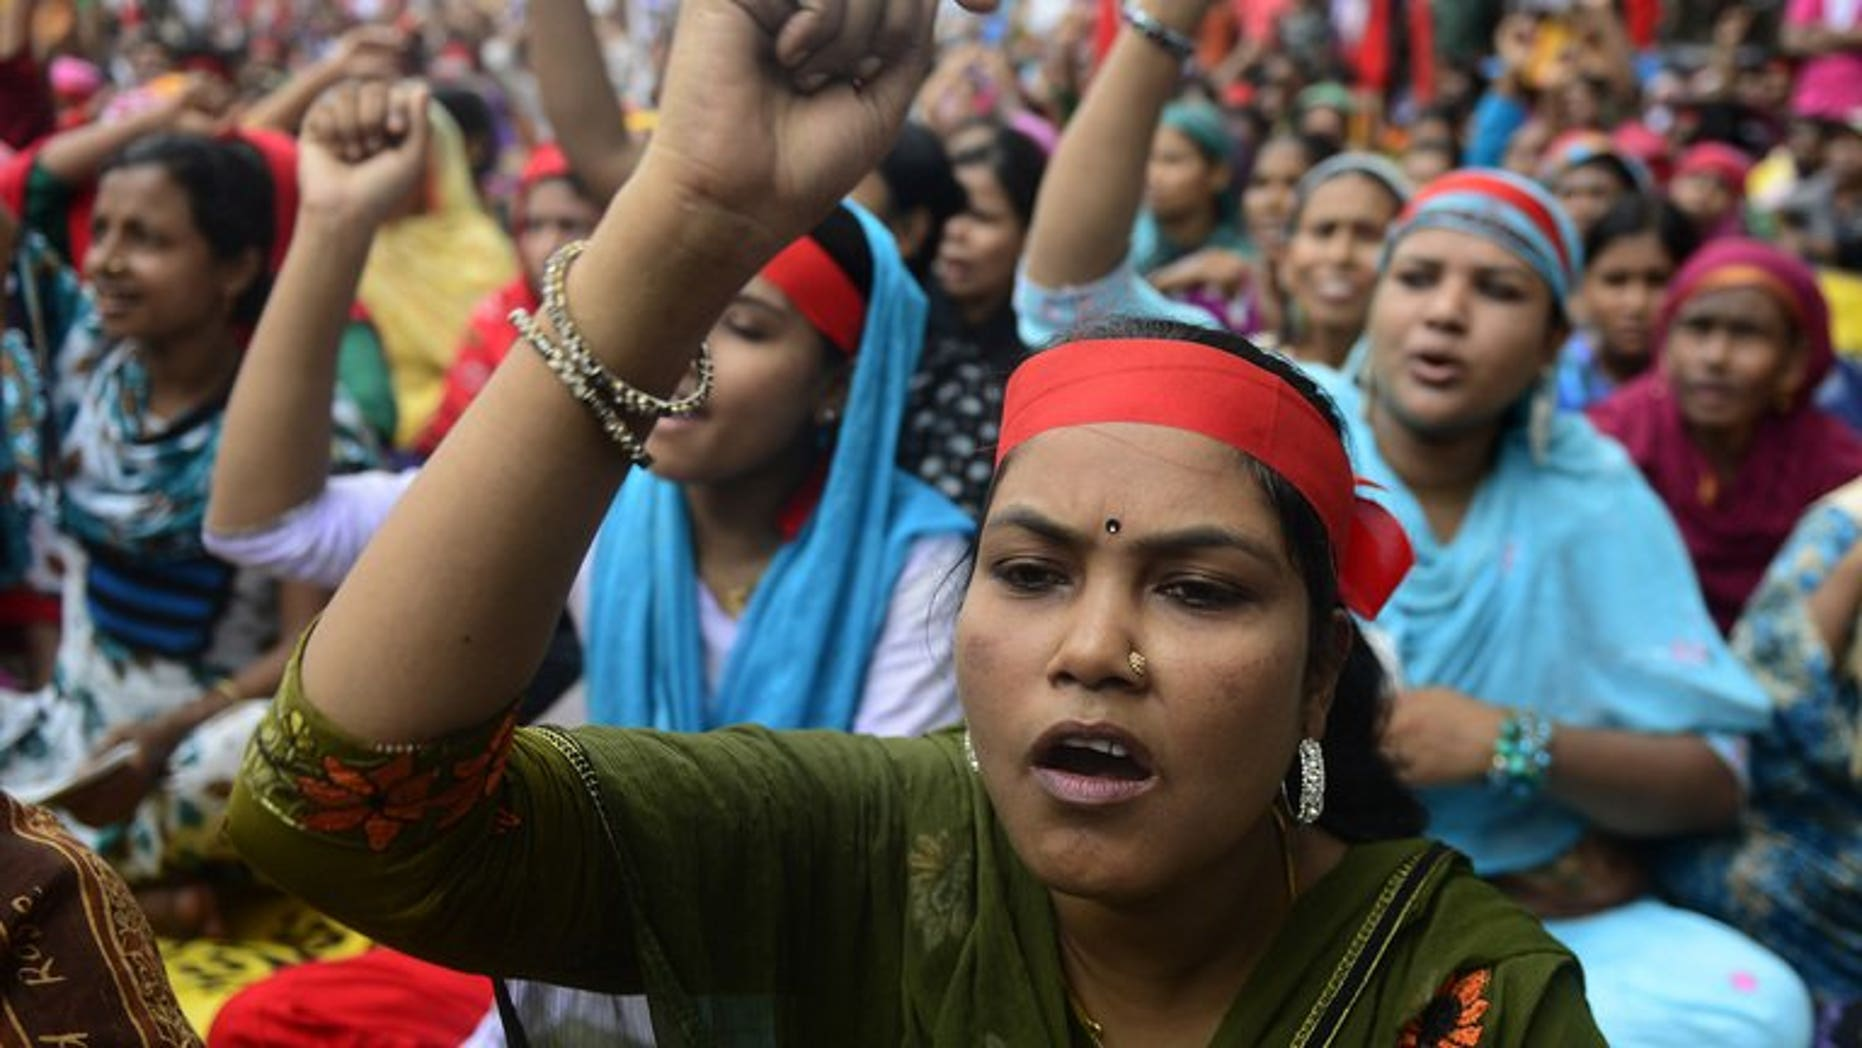 Bangladeshi garment workers shout slogans as they demand a wage increase during a rally in Dhaka, on September 13, 2013. Thousands of Bangladesh garment workers blocked roads and attacked factories outside the capital Dhaka, demanding a $100 minimum monthly wage.